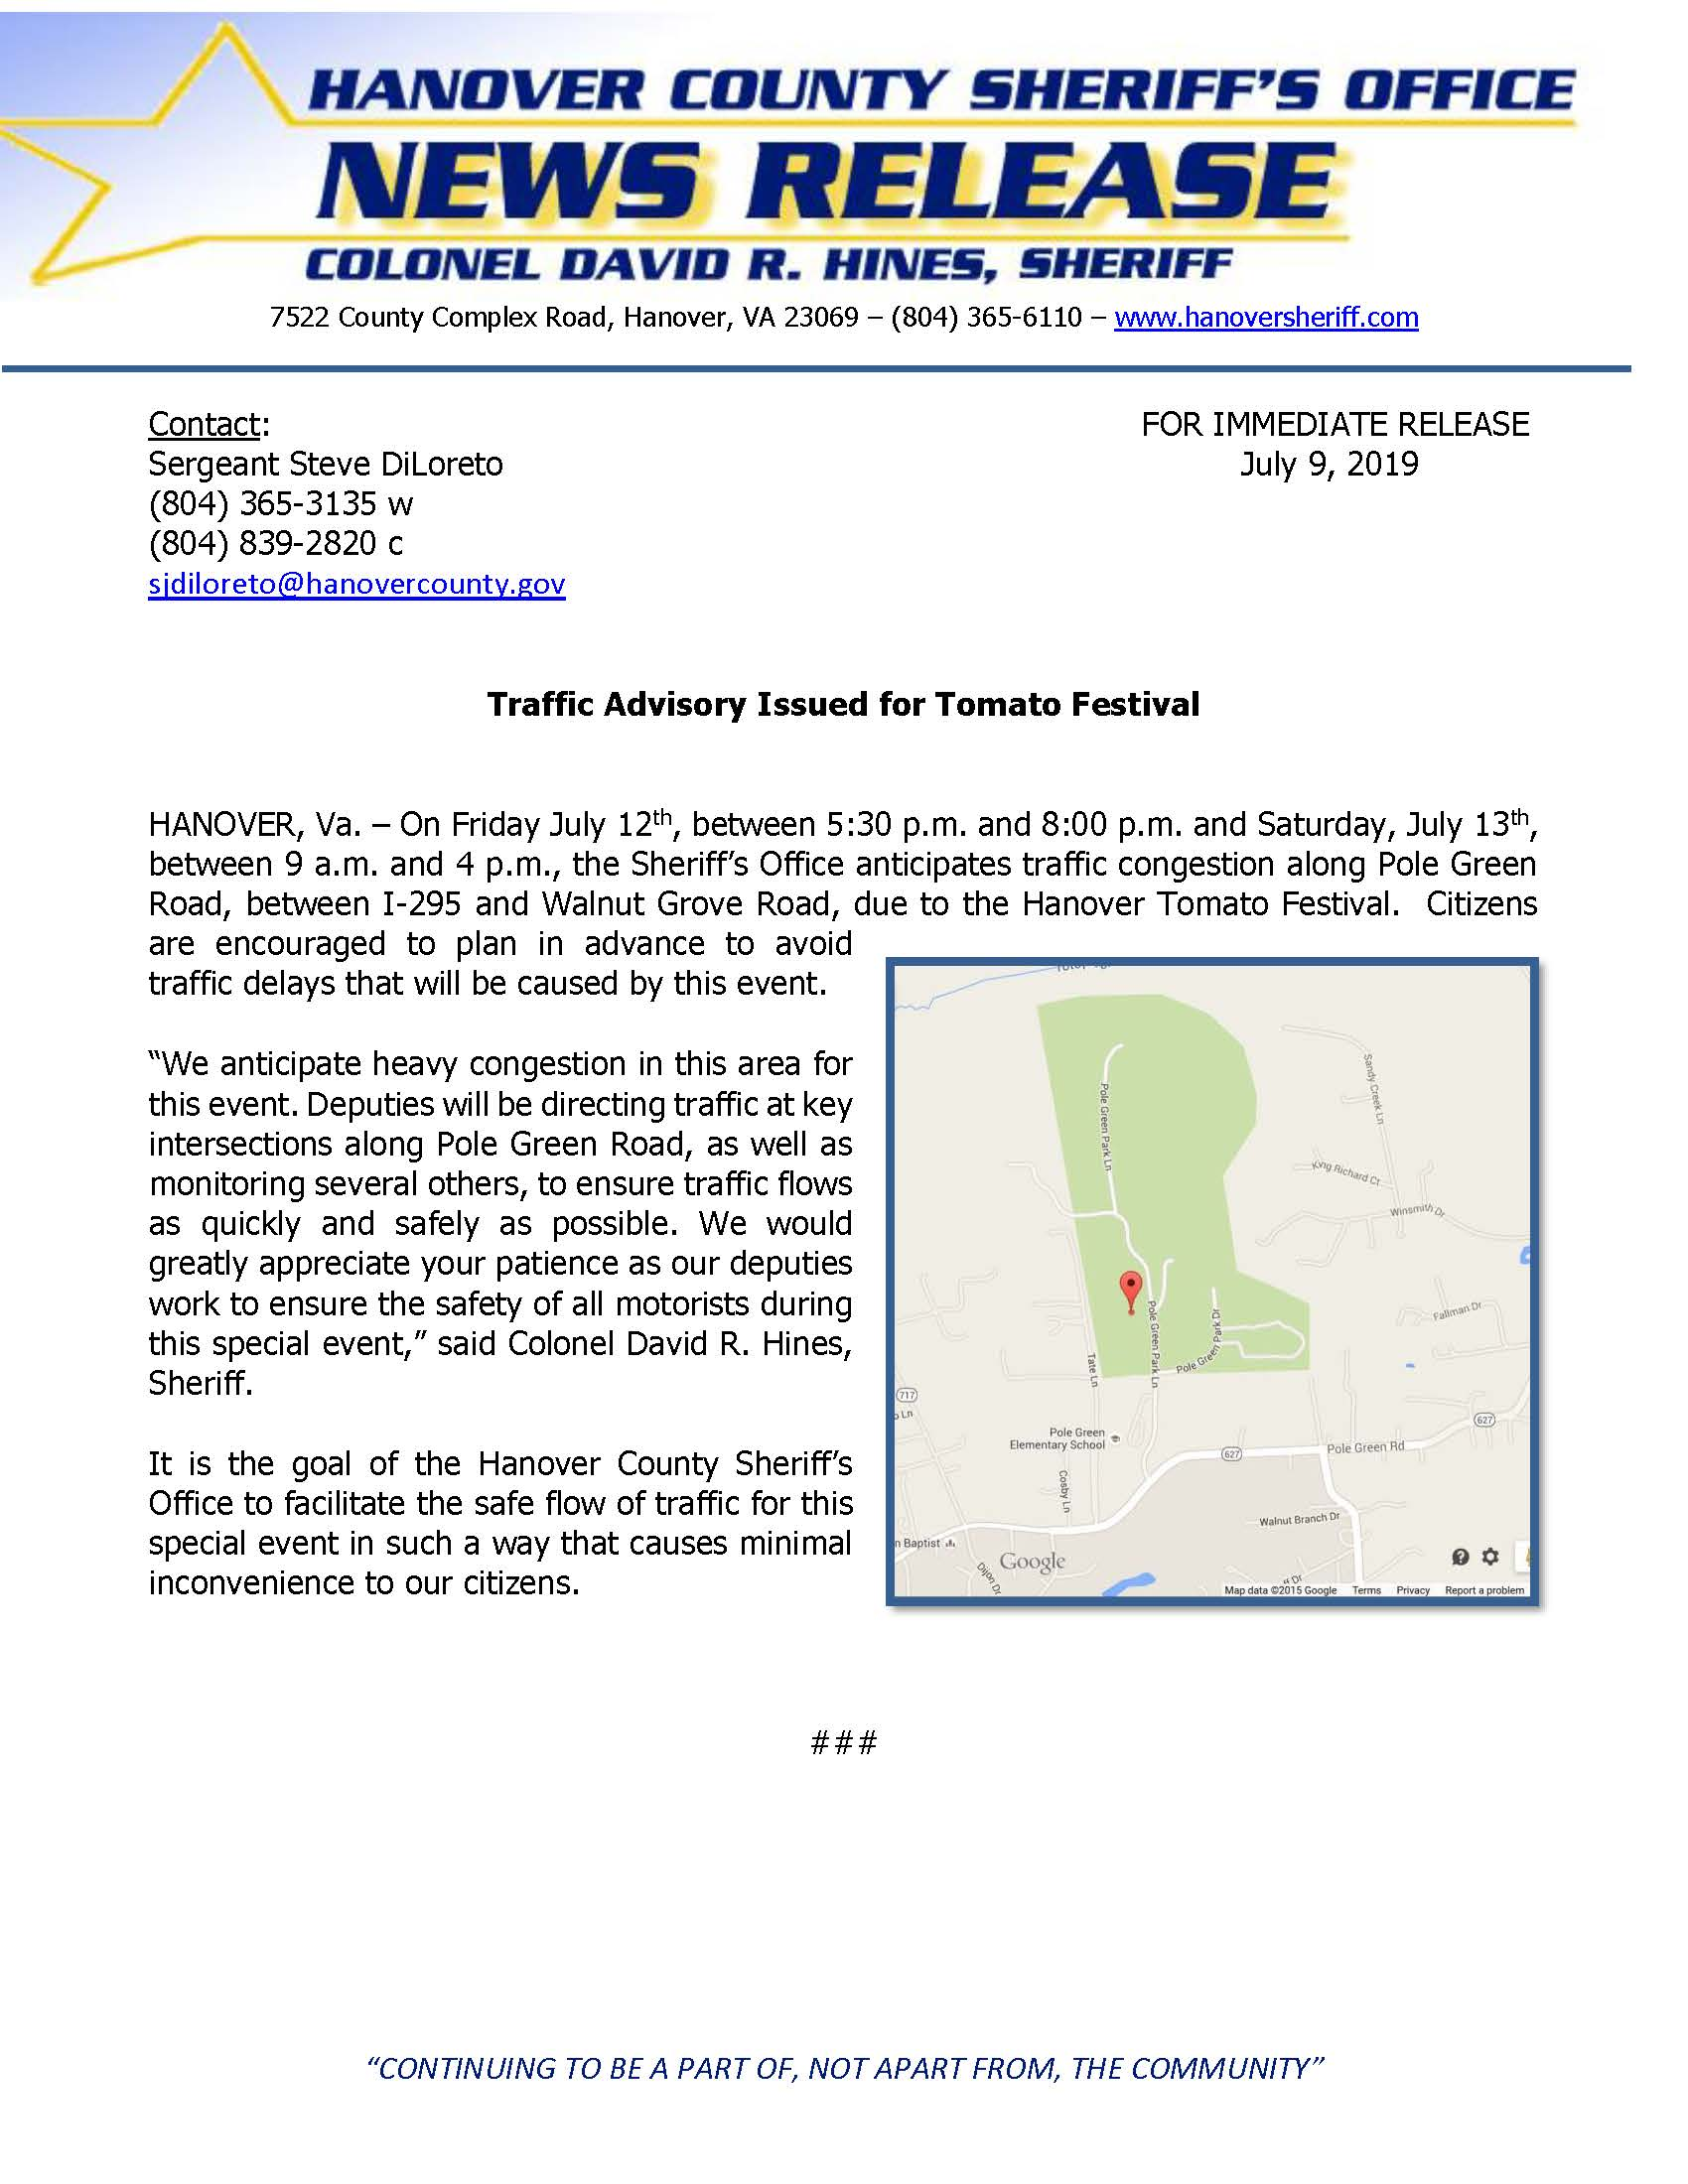 HCSO Issues Traffic Advisory for Tomato Festival 2019